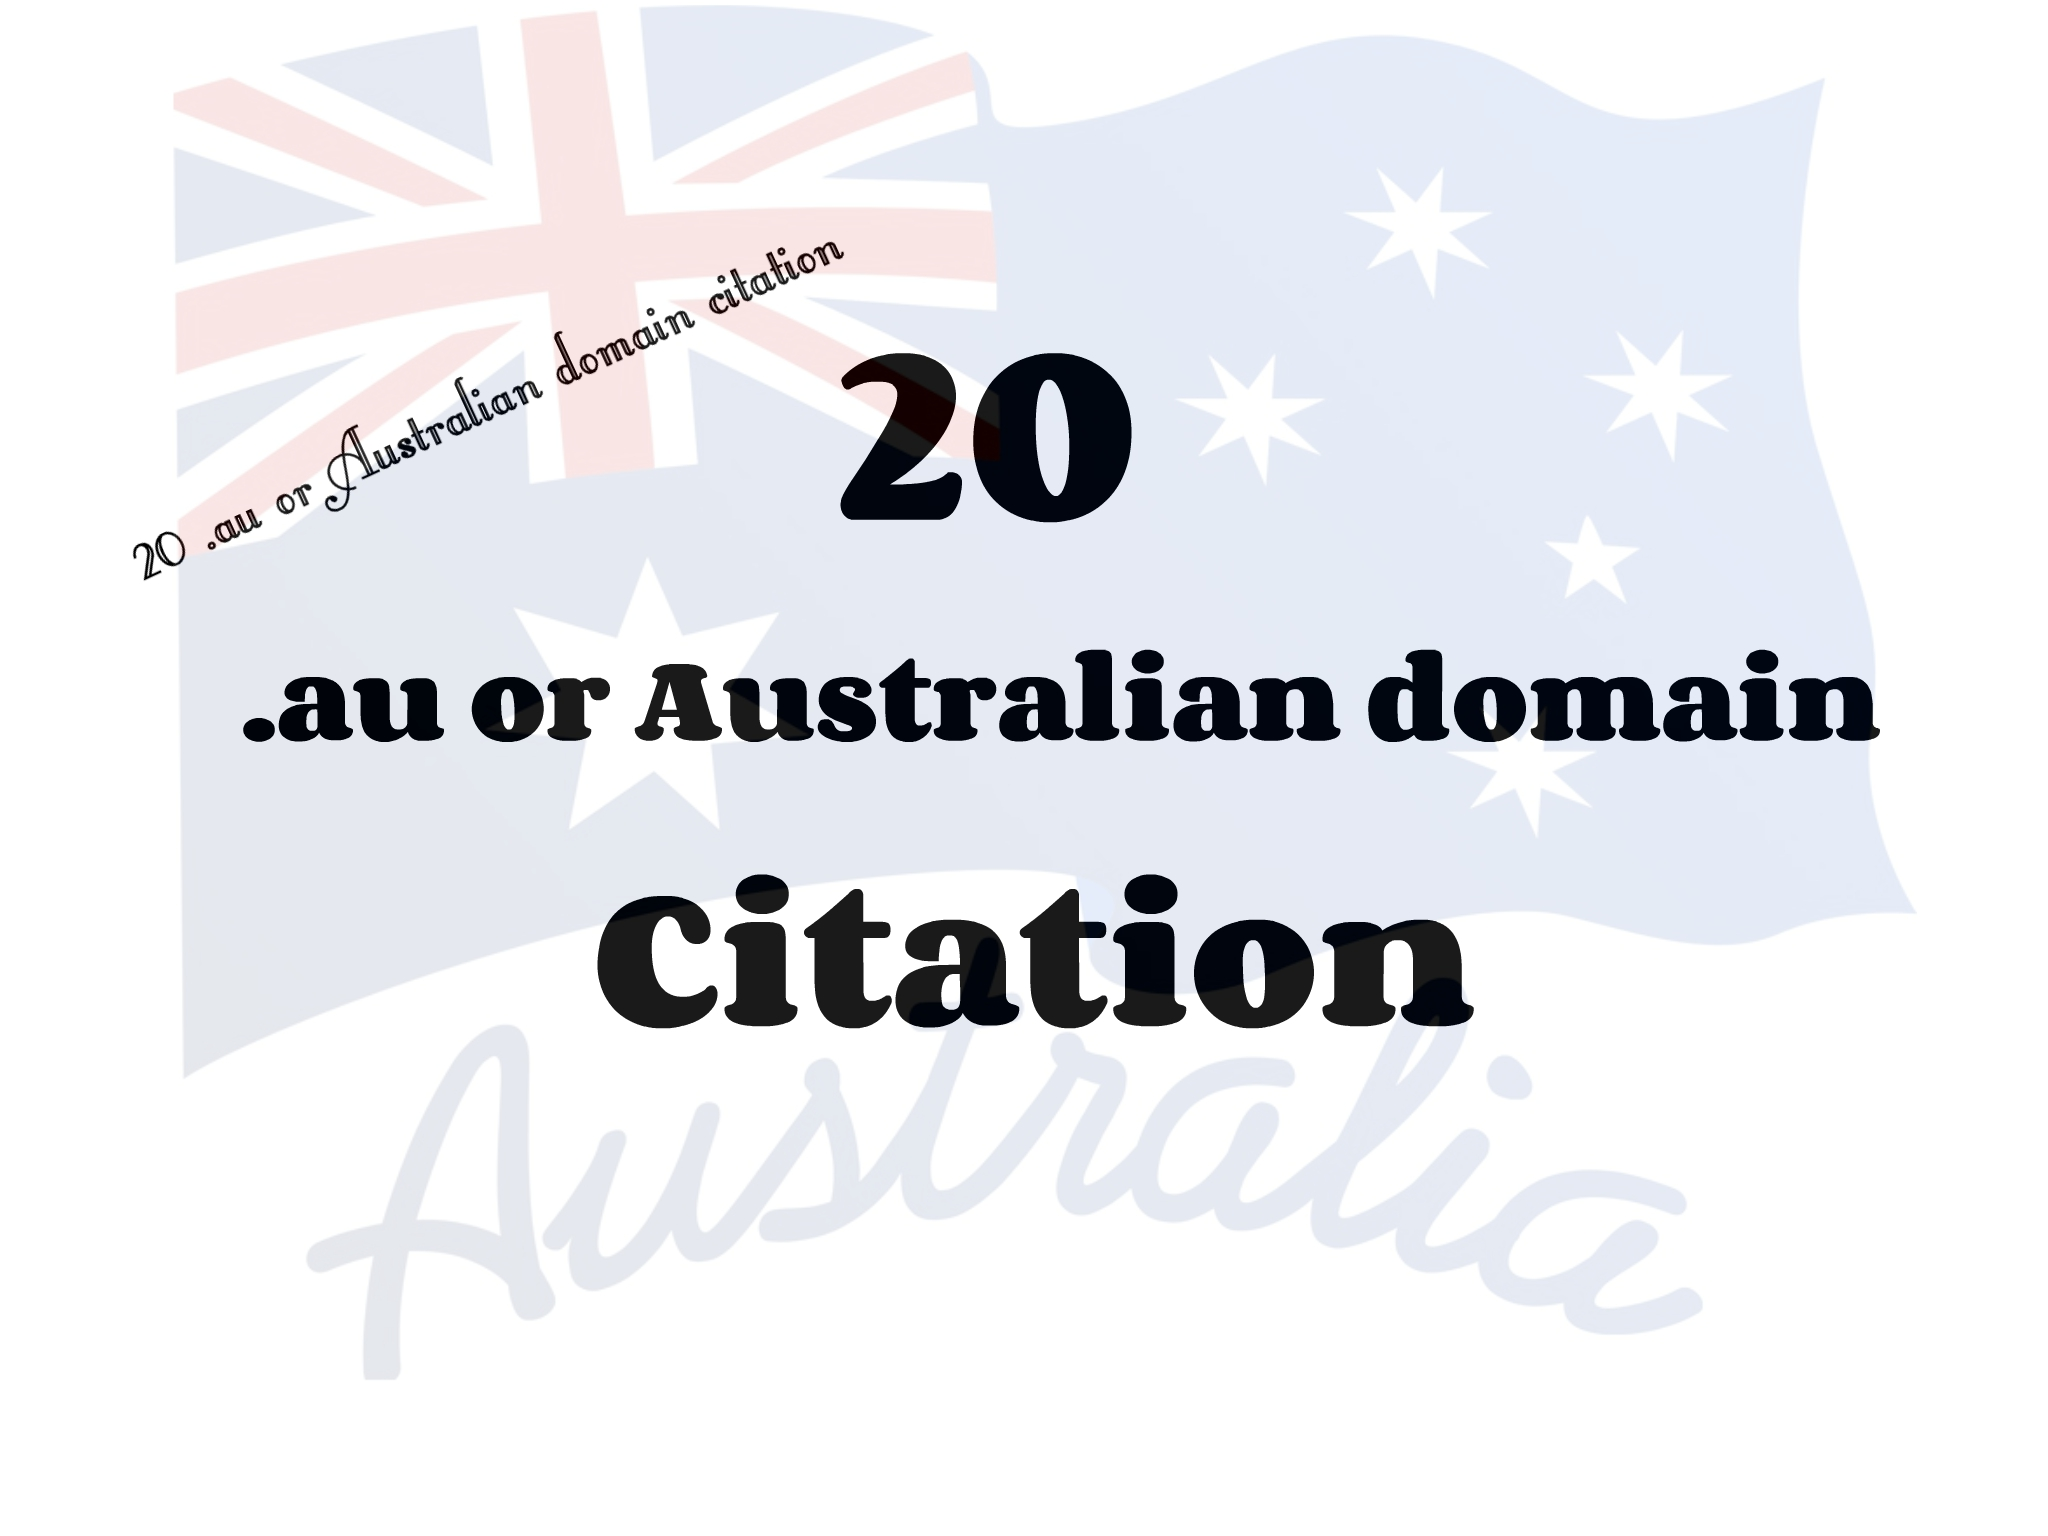 20. au or Australian domain Citation